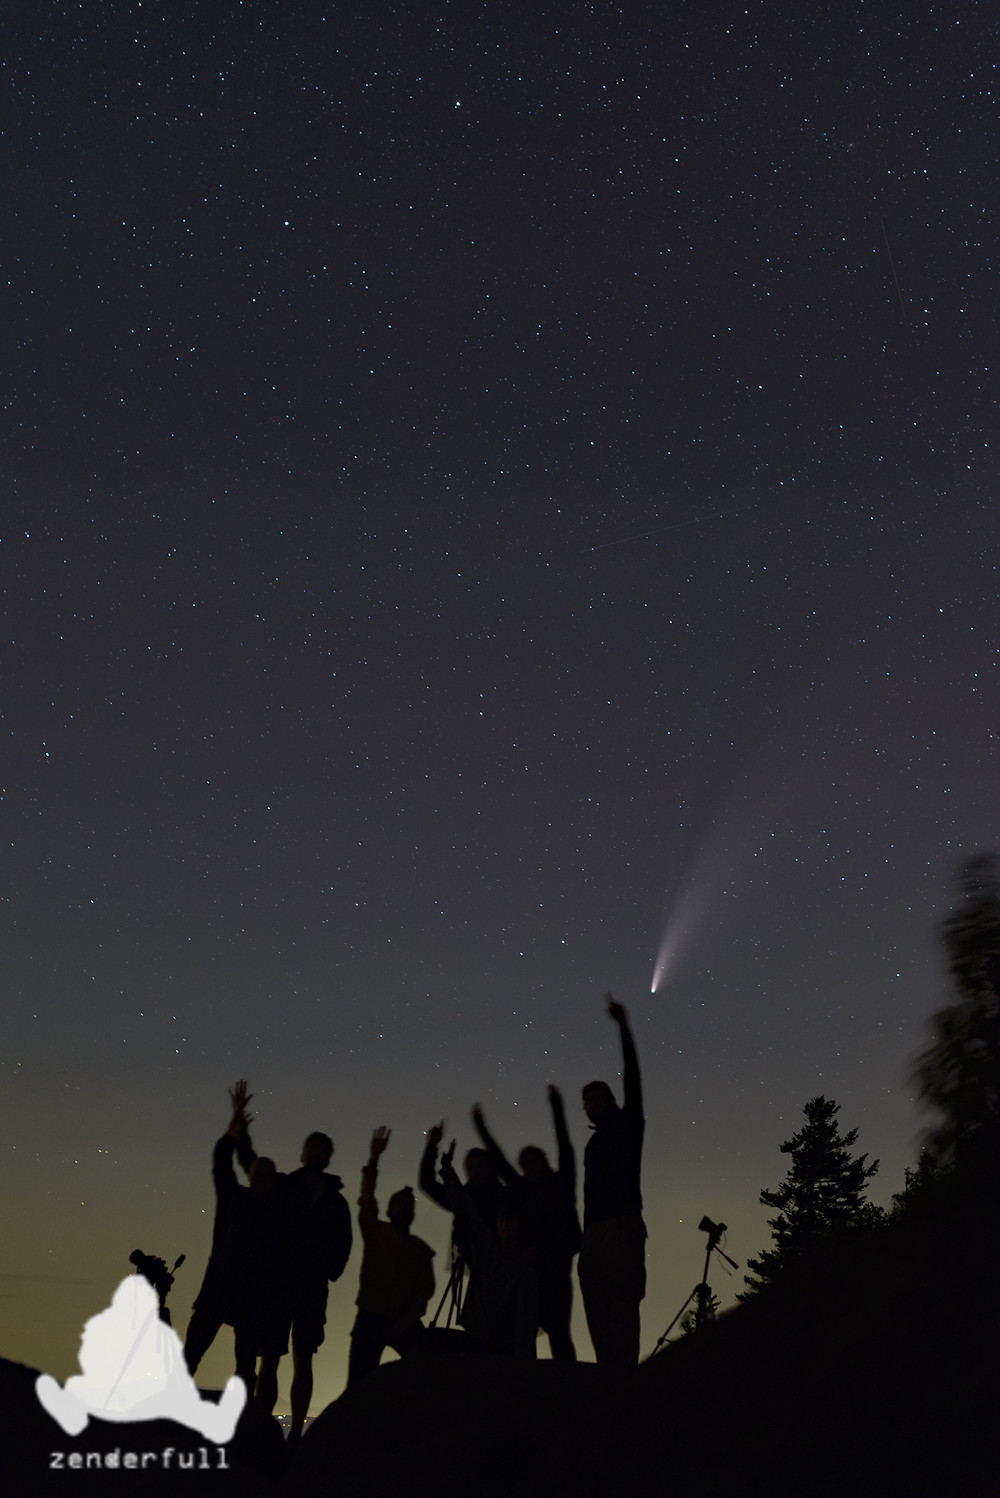 Comet with people in the foreground